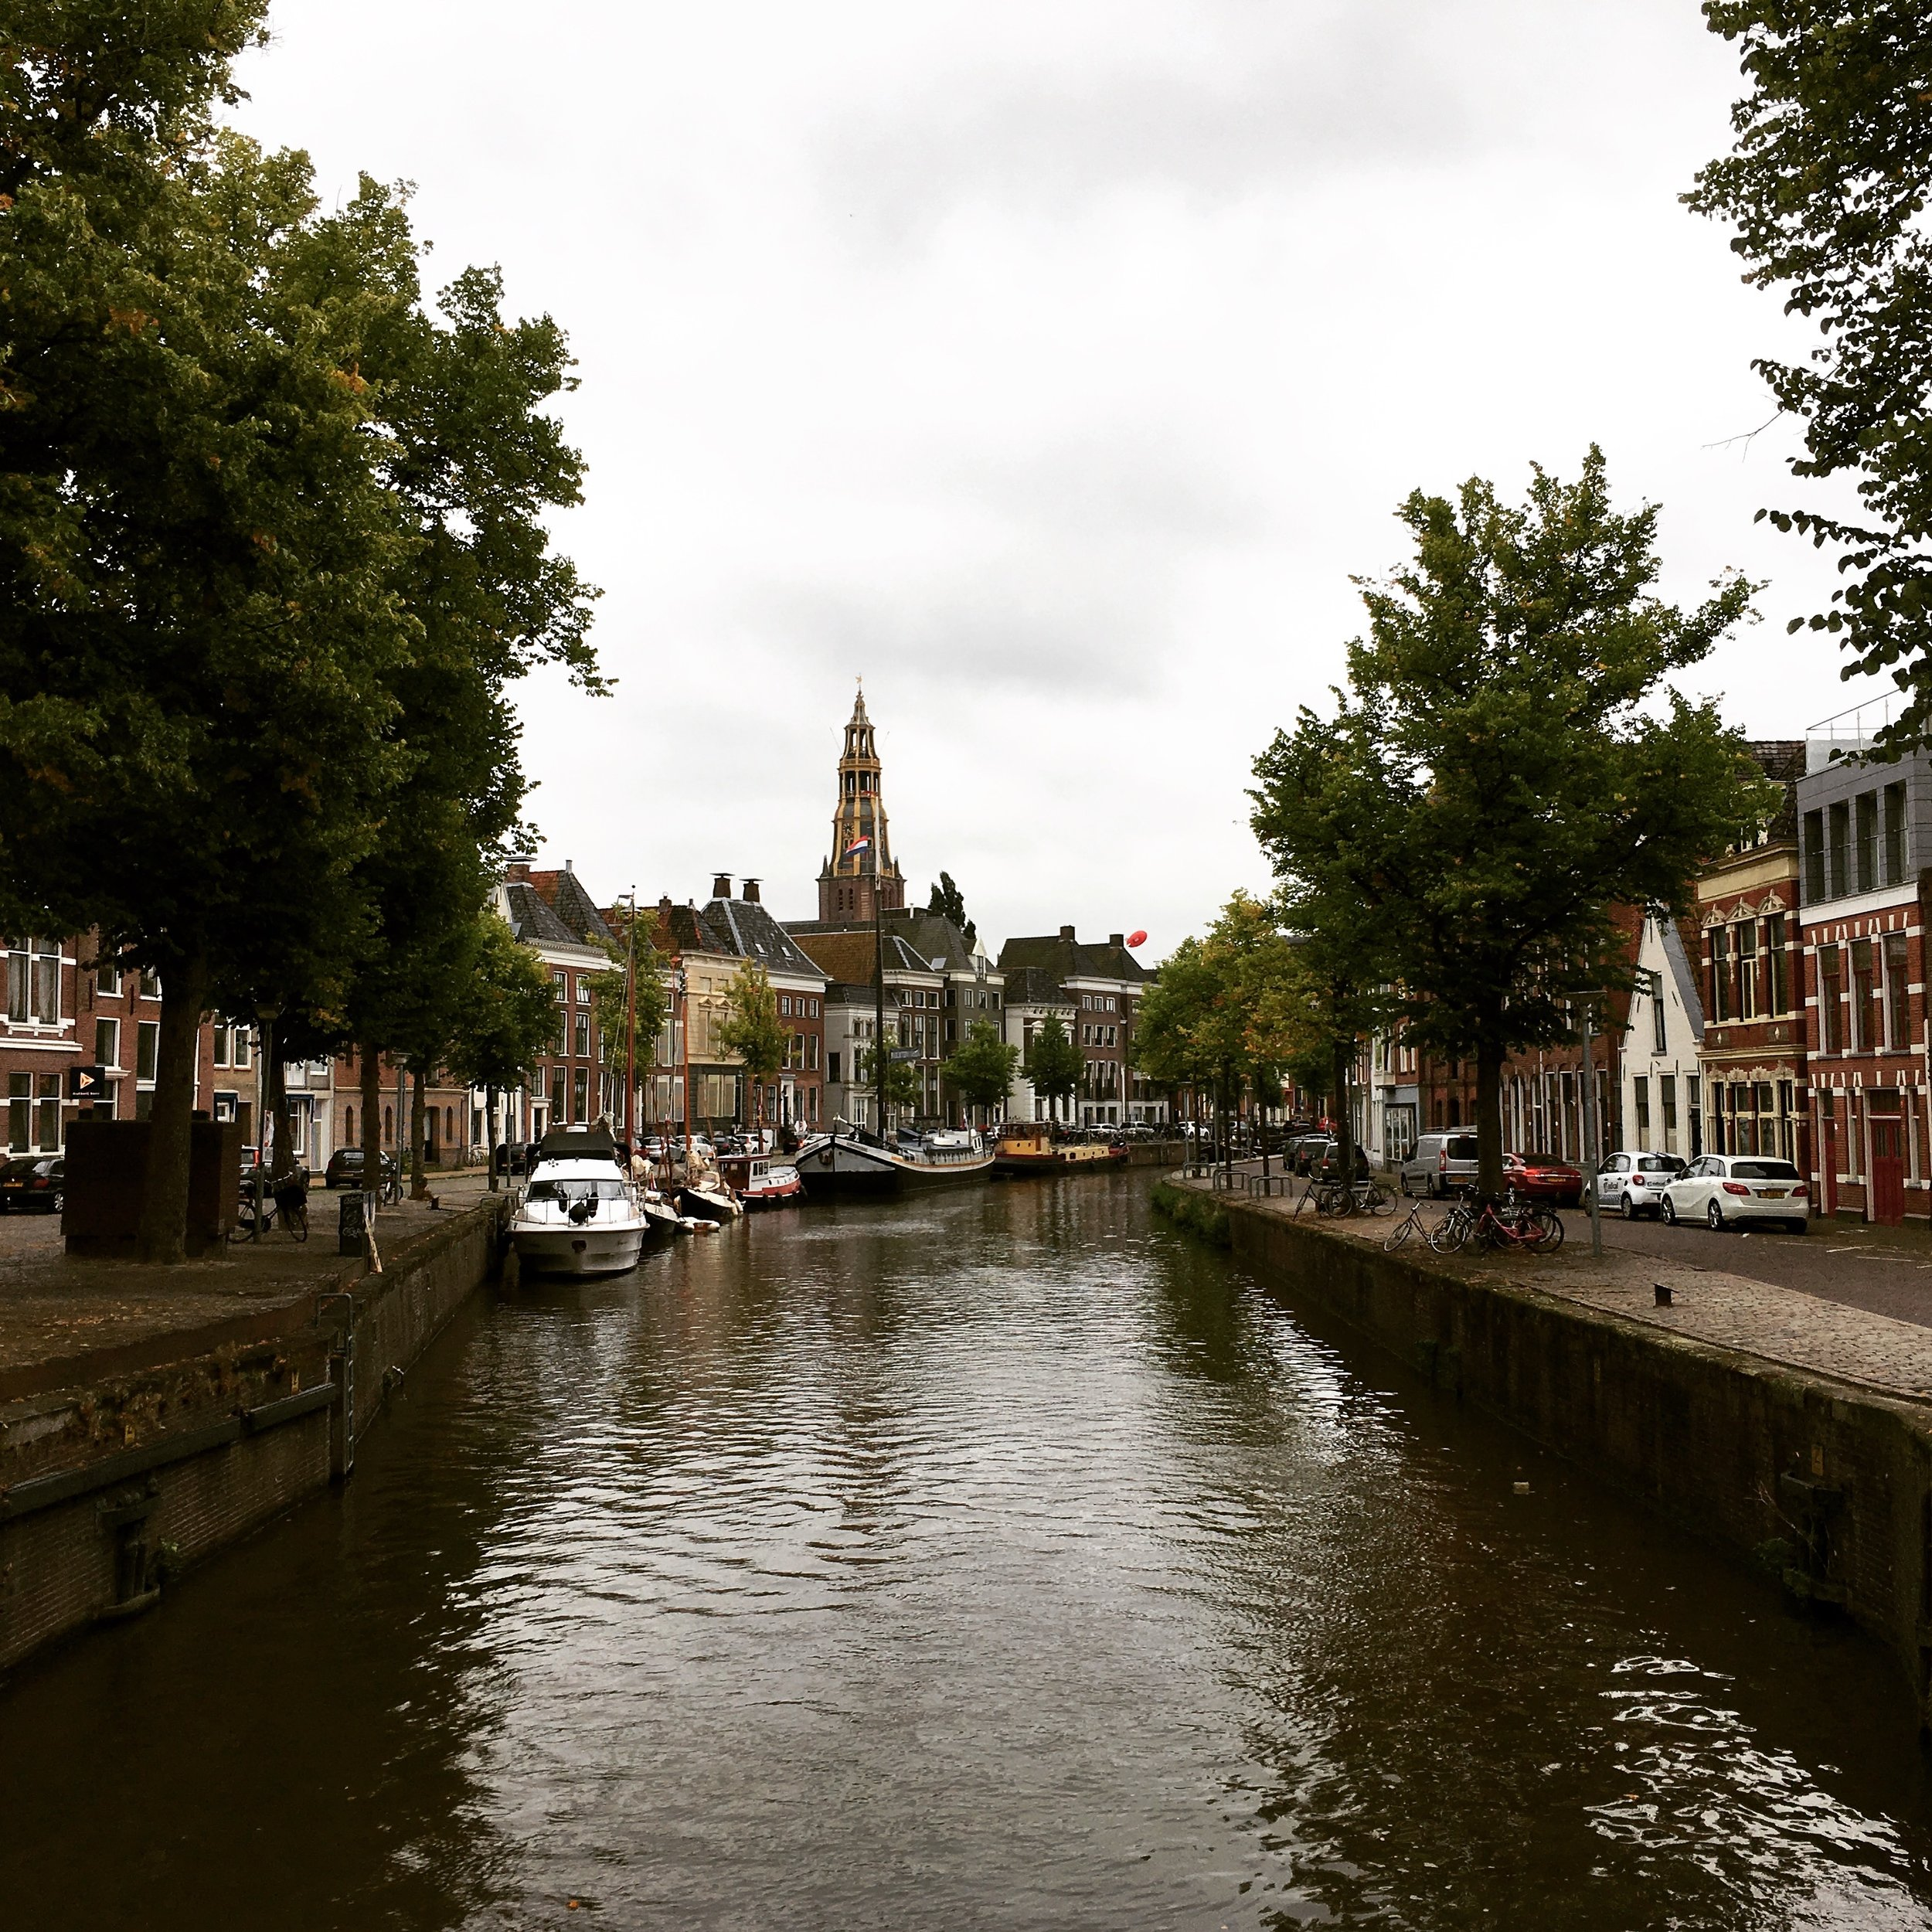 A view of the Martinitoren in the distance from a canal in Groningen, The Netherlands.